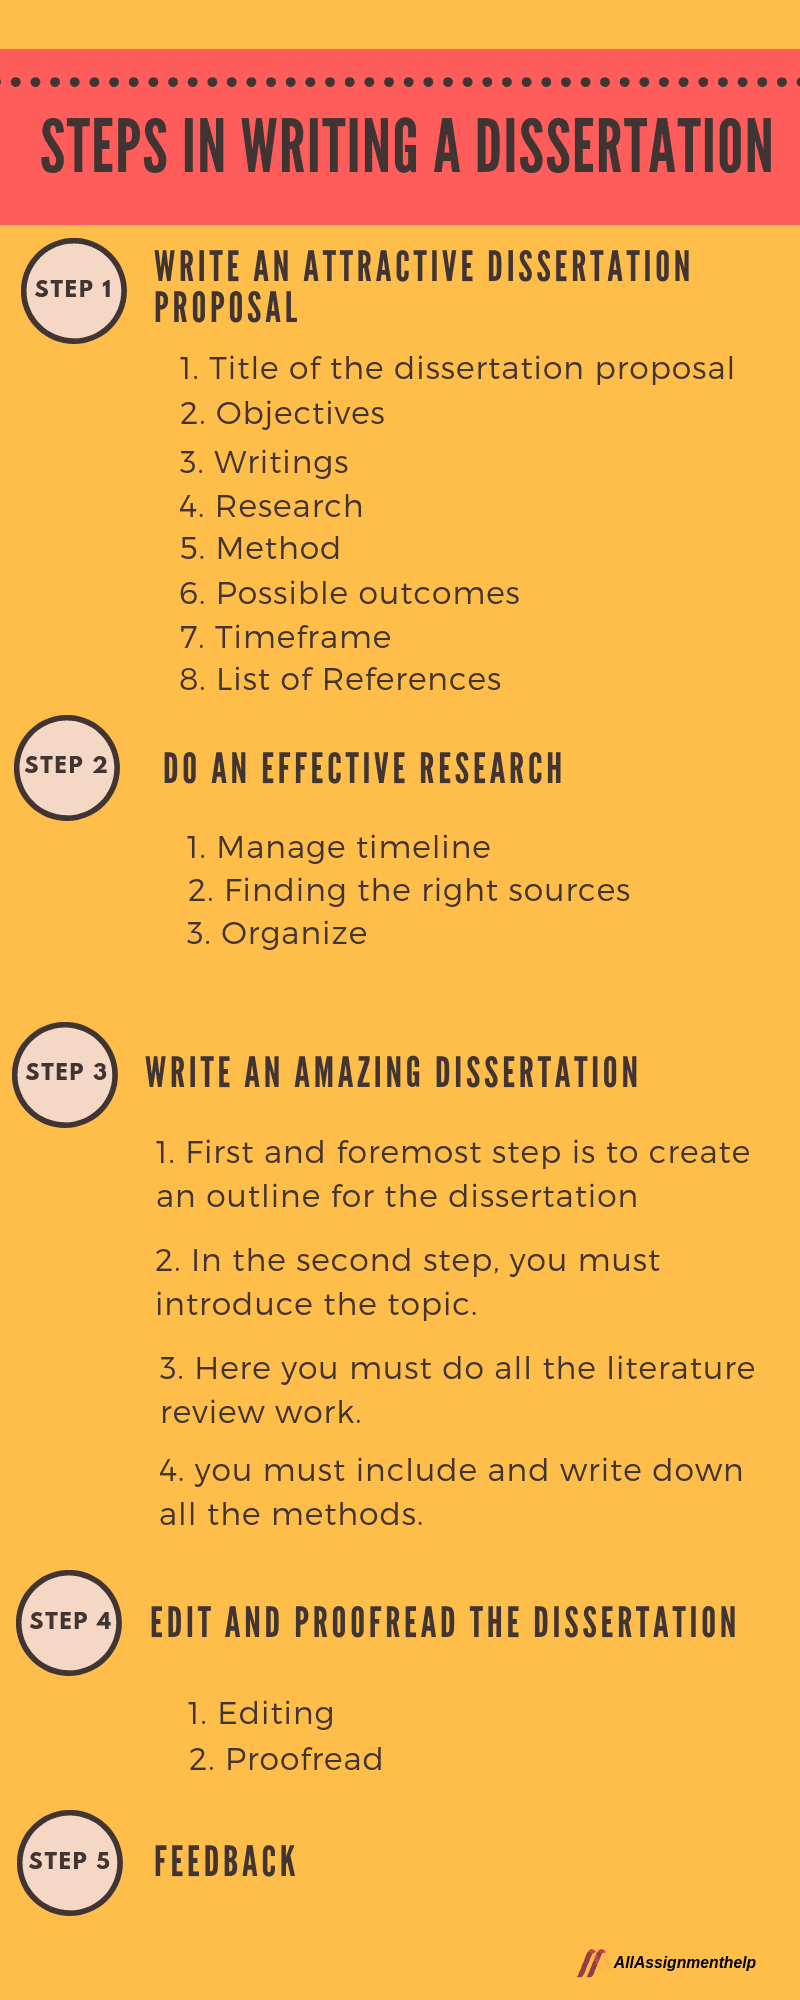 How to write my dissertation proposal